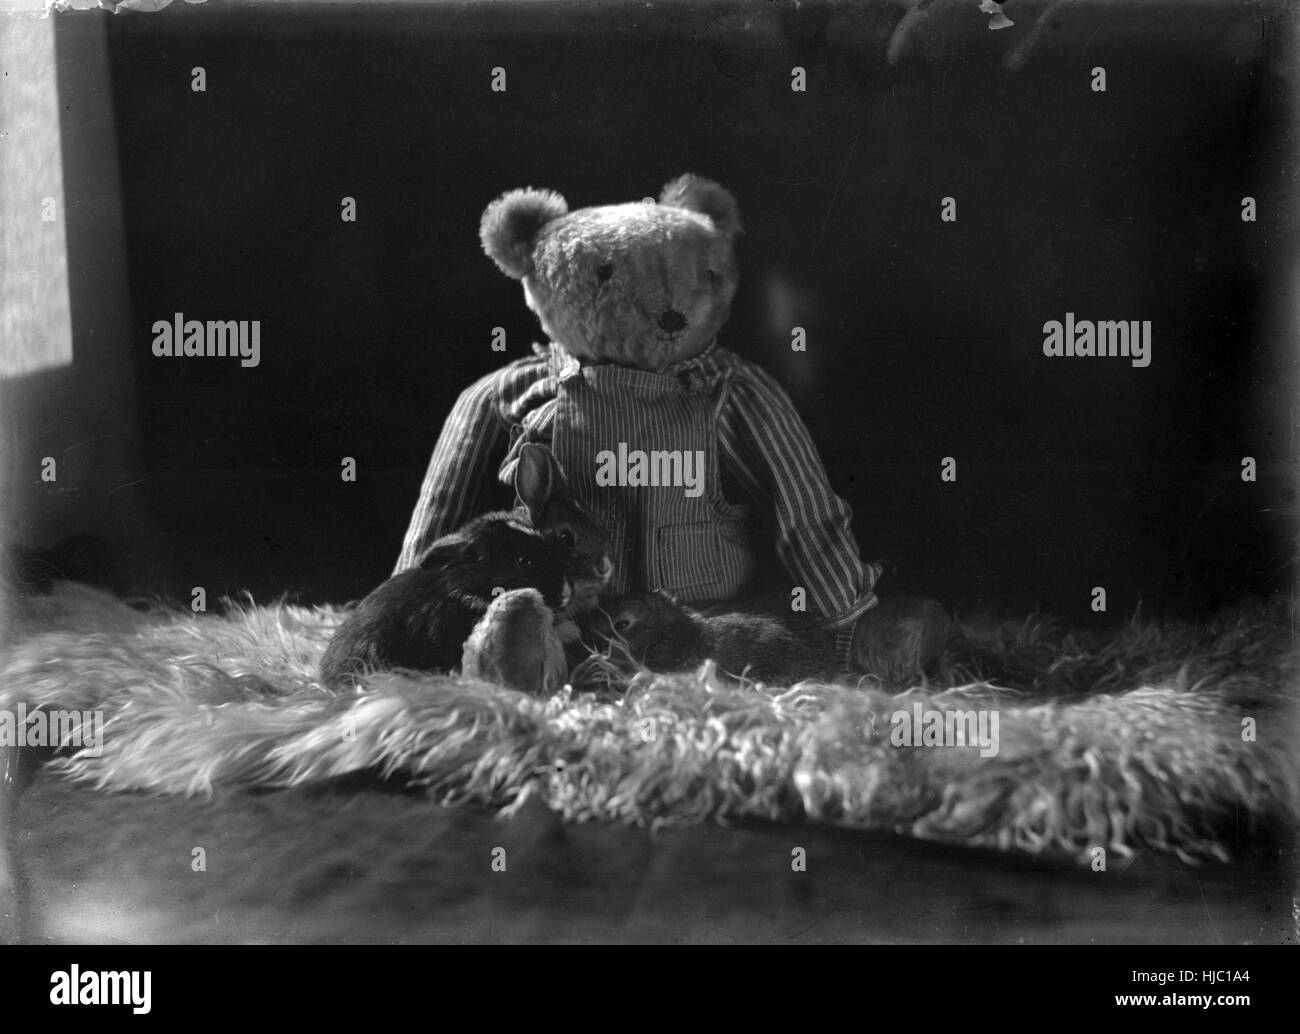 Antique c1920 photograph, teddy bear and bunny rabbits. - Stock Image